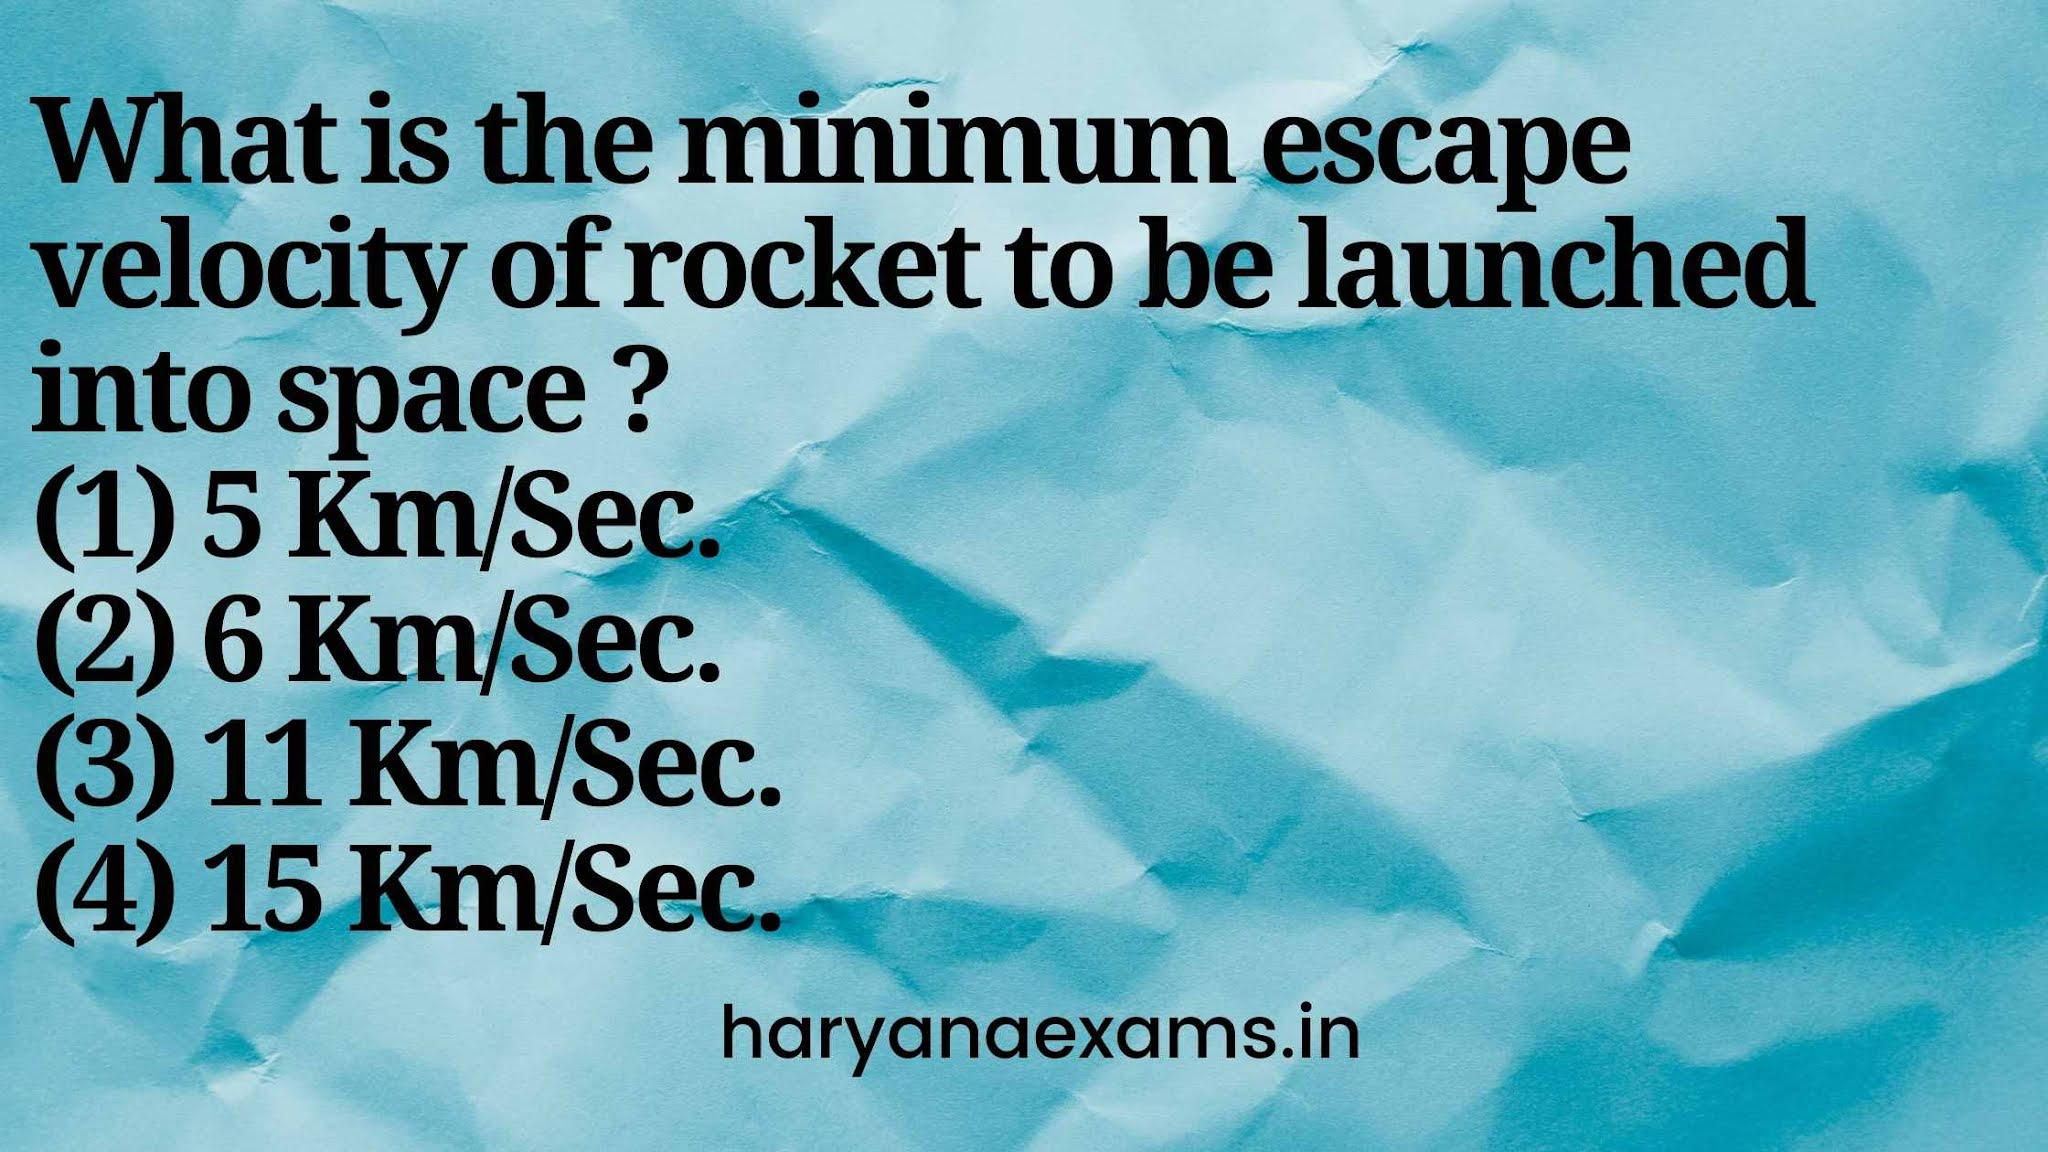 What is the minimum escape velocity of rocket to be launched into space ?   (1) 5 Km/Sec.   (2) 6 Km/Sec.   (3) 11 Km/Sec.  (4) 15 Km/Sec.